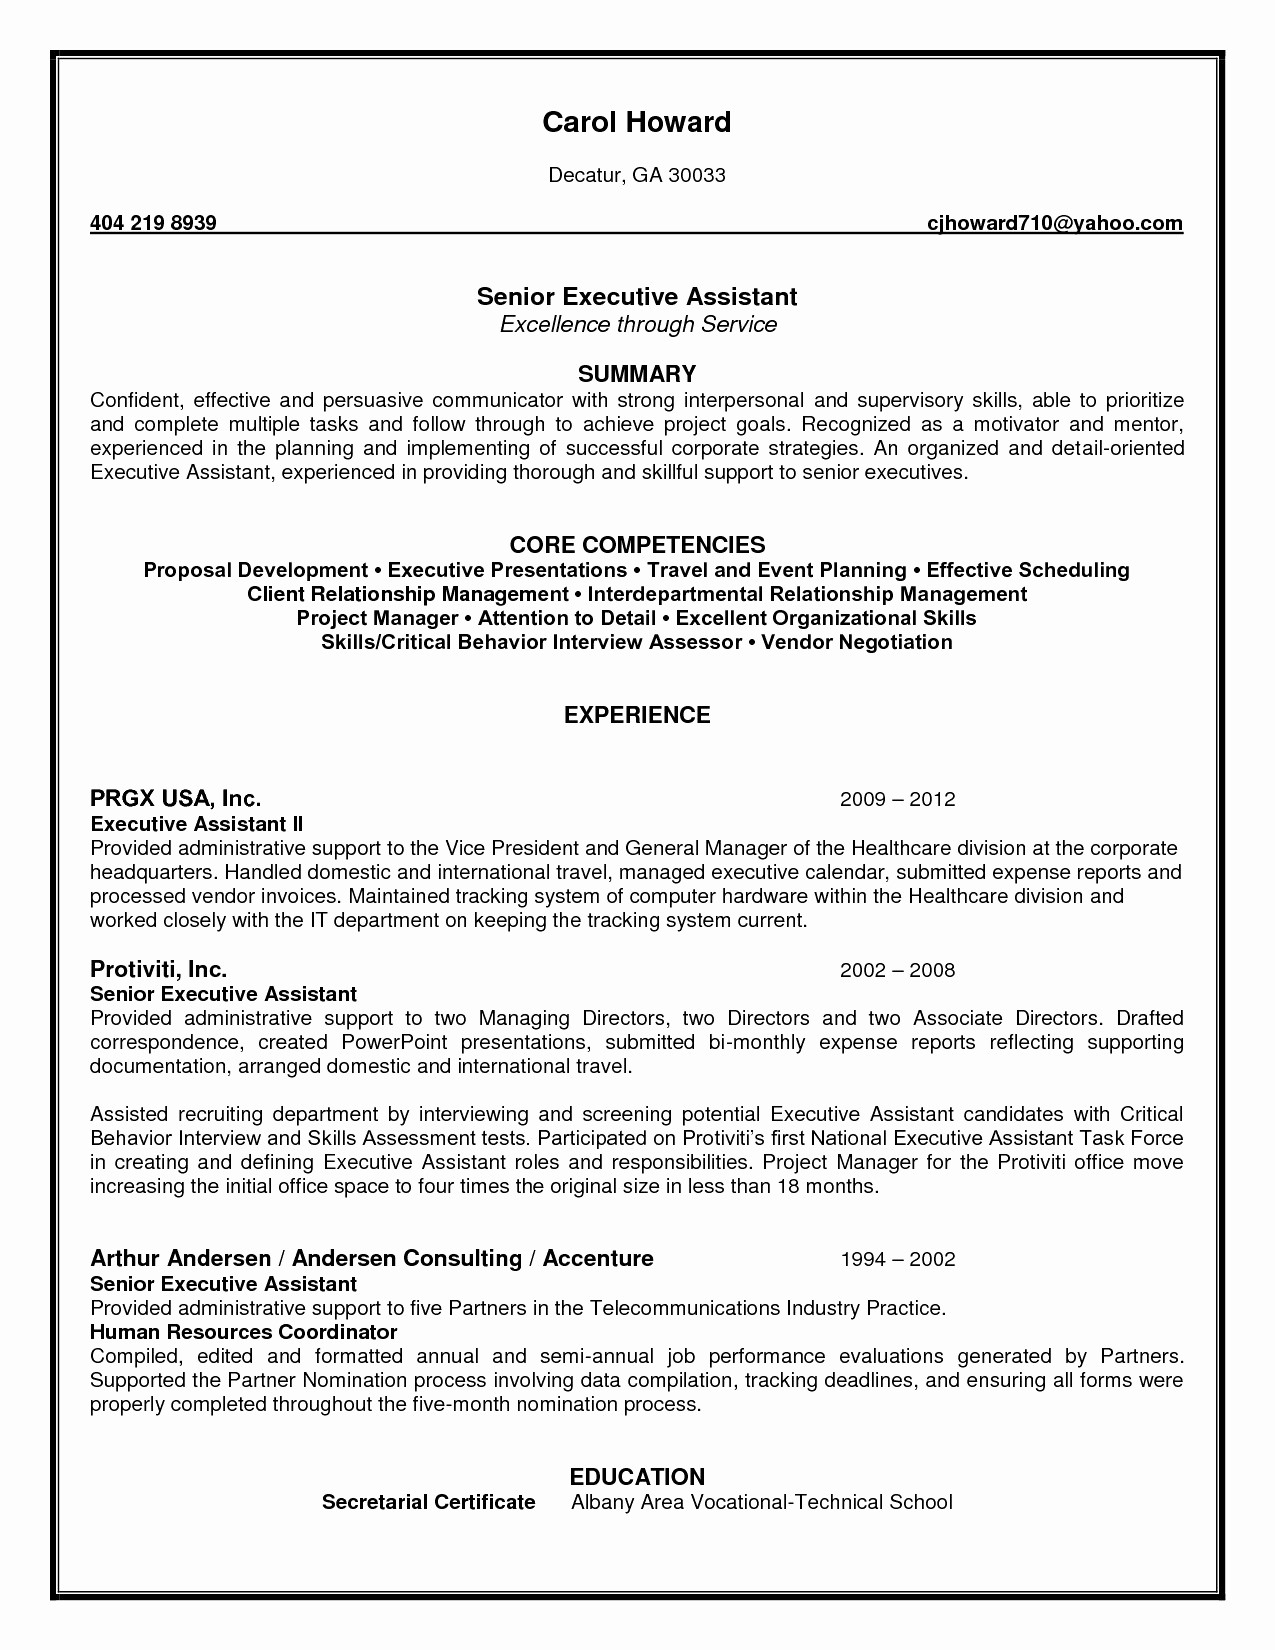 11 Core Competencies Resume Sample Collection Resume